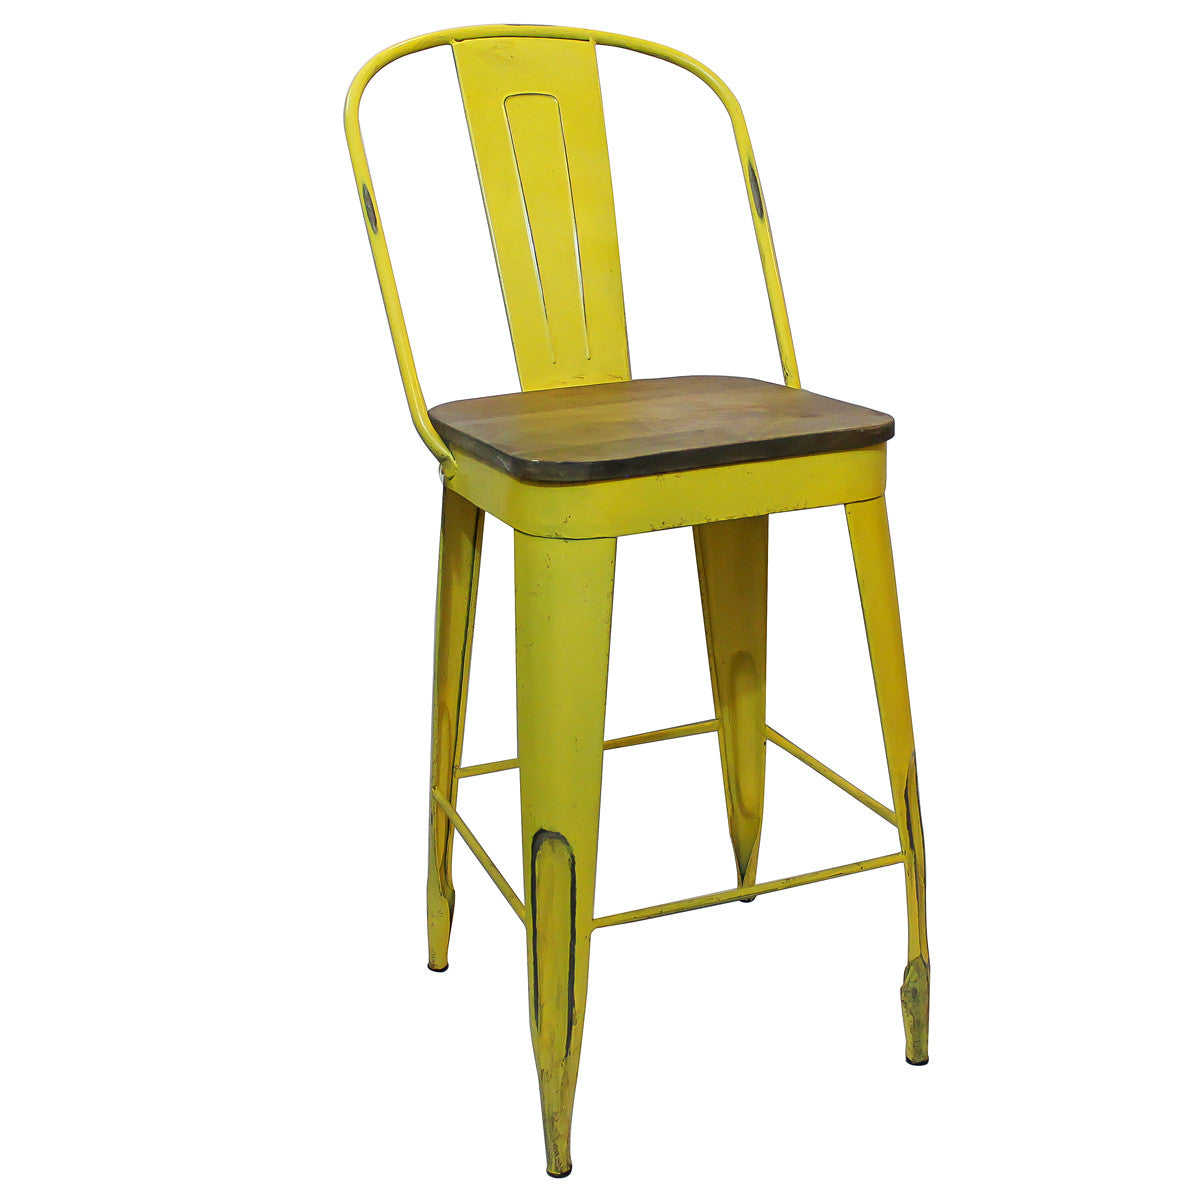 Frenchy Counter Stool 25 Seat Yellow Wrightwood Furniture